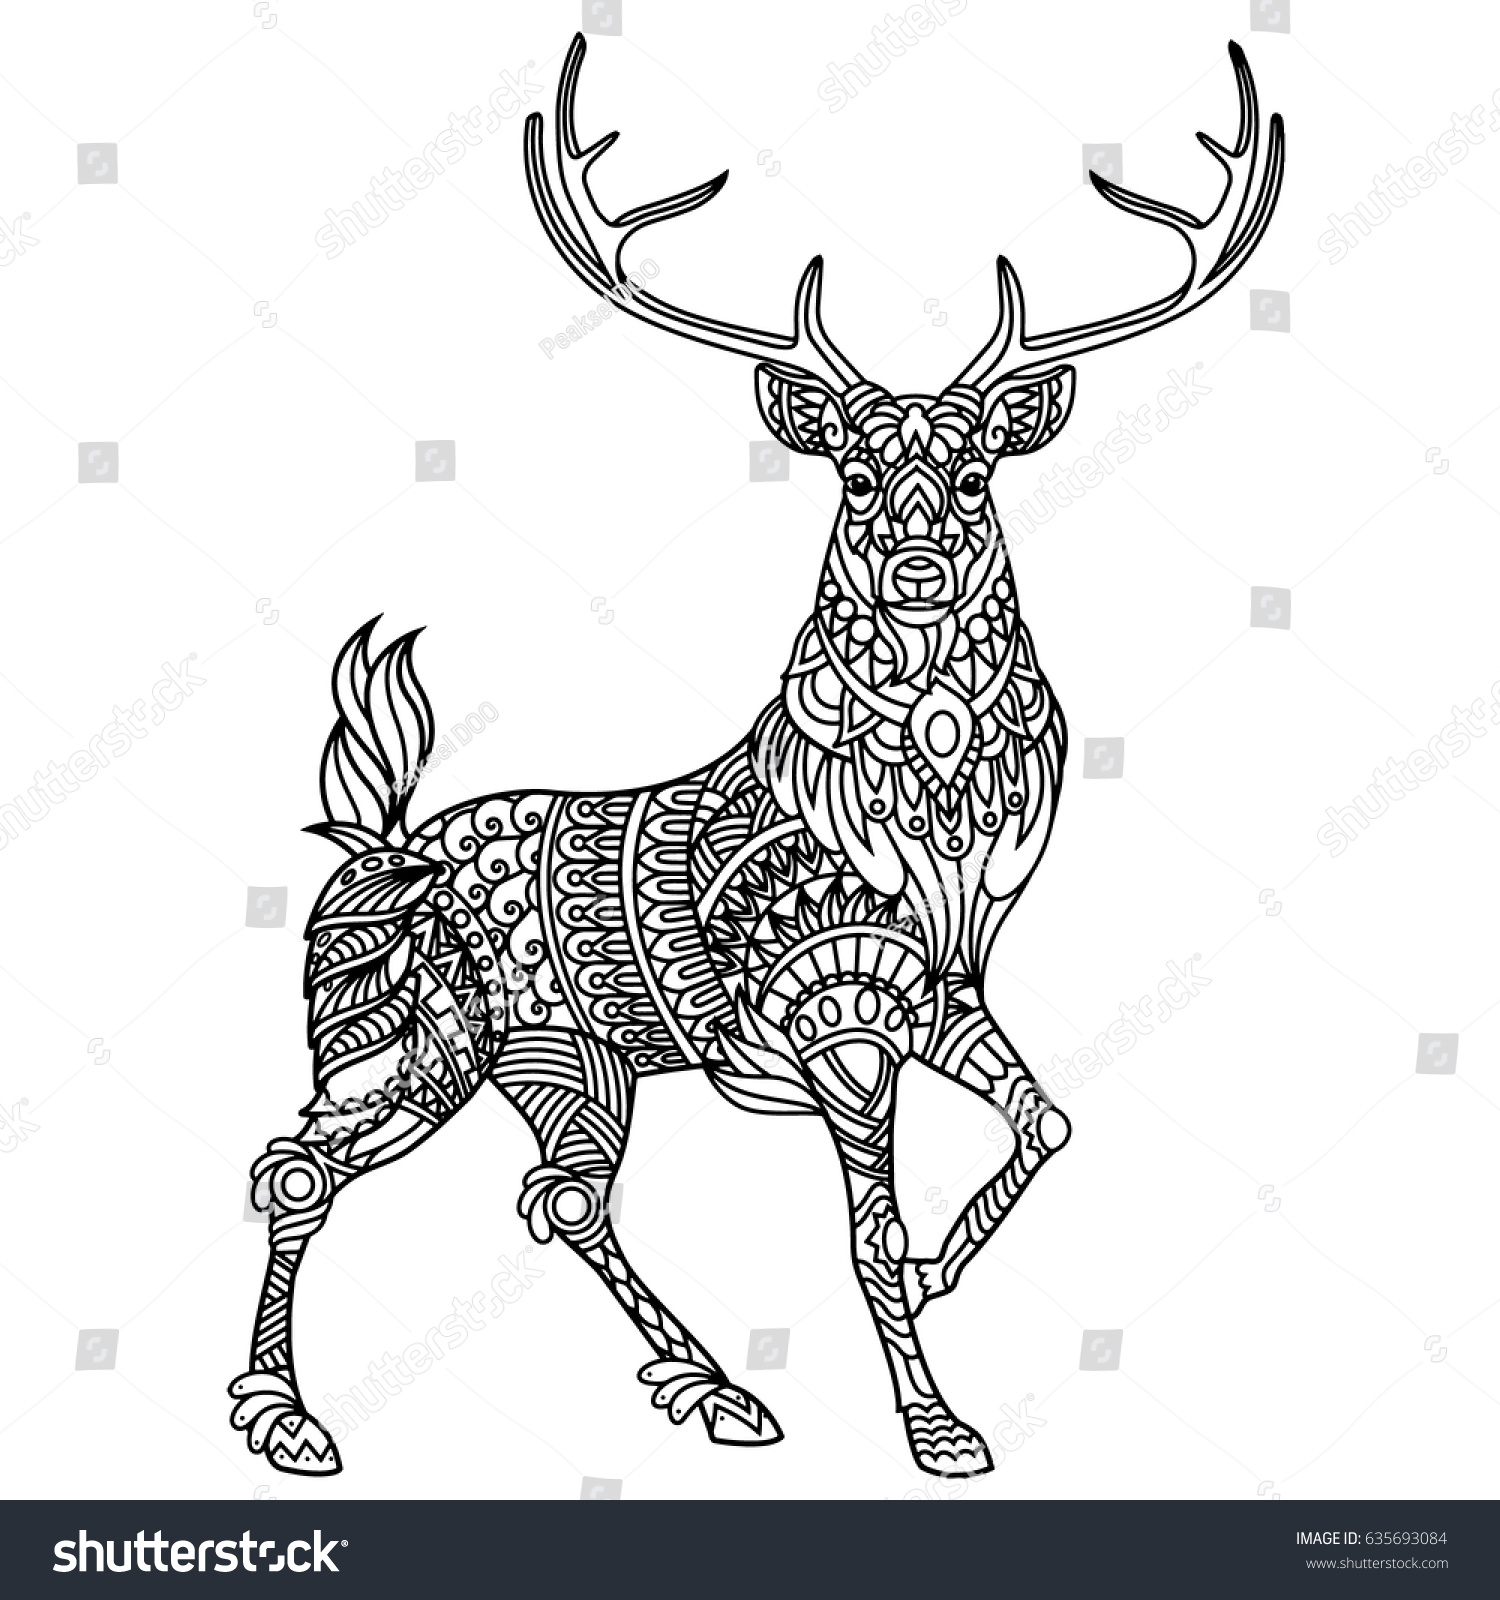 Stag Coloring Book Adults Stock Vector 635693084 - Shutterstock